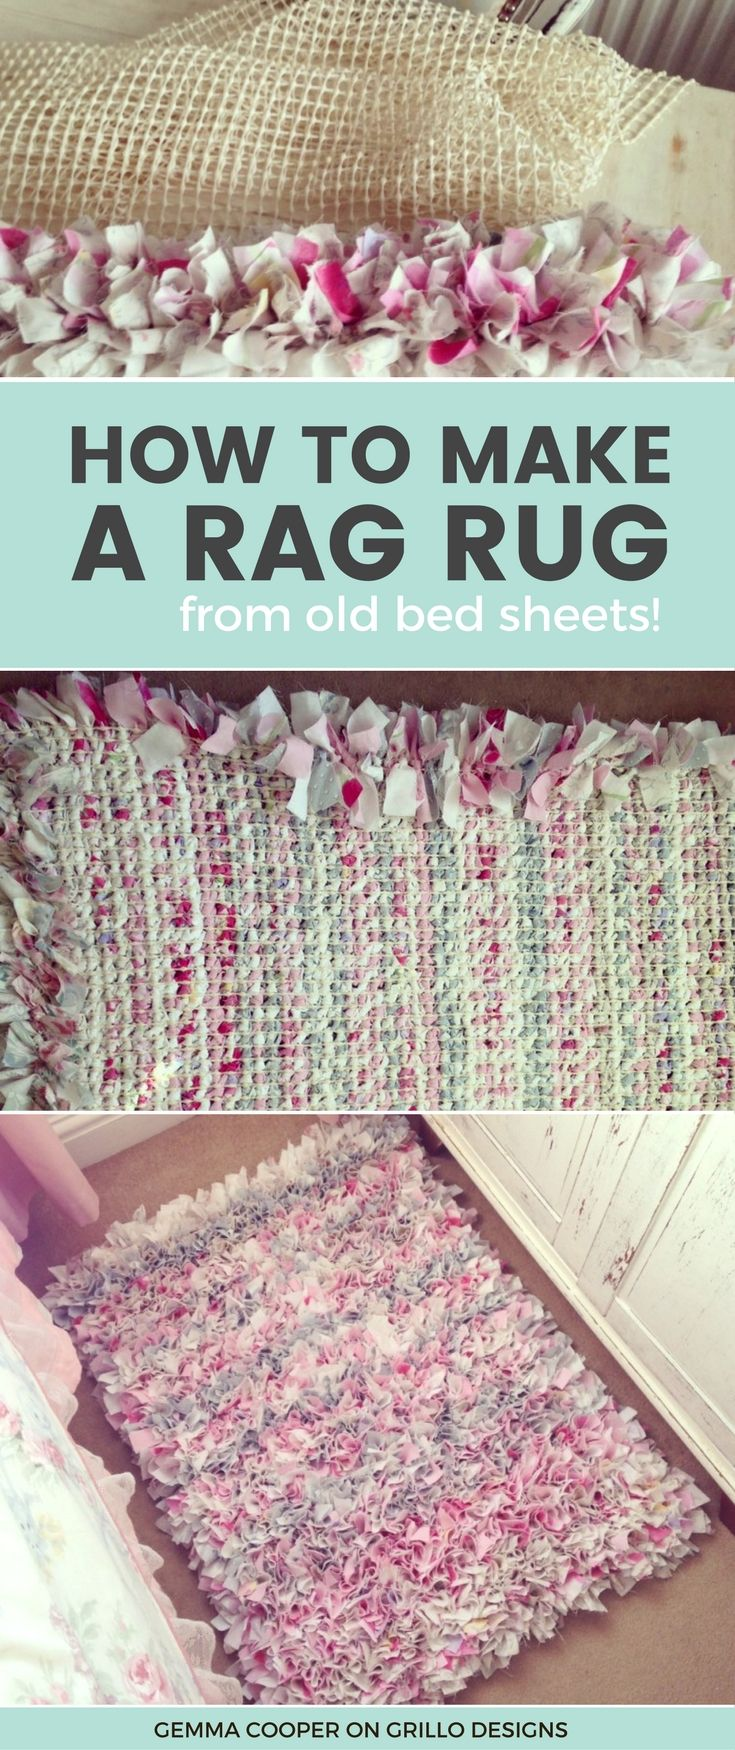 Design Diy Rug best 25 rug making ideas on pinterest diy rugs rag and tutorial gemma cooper shares an easy method how to create the